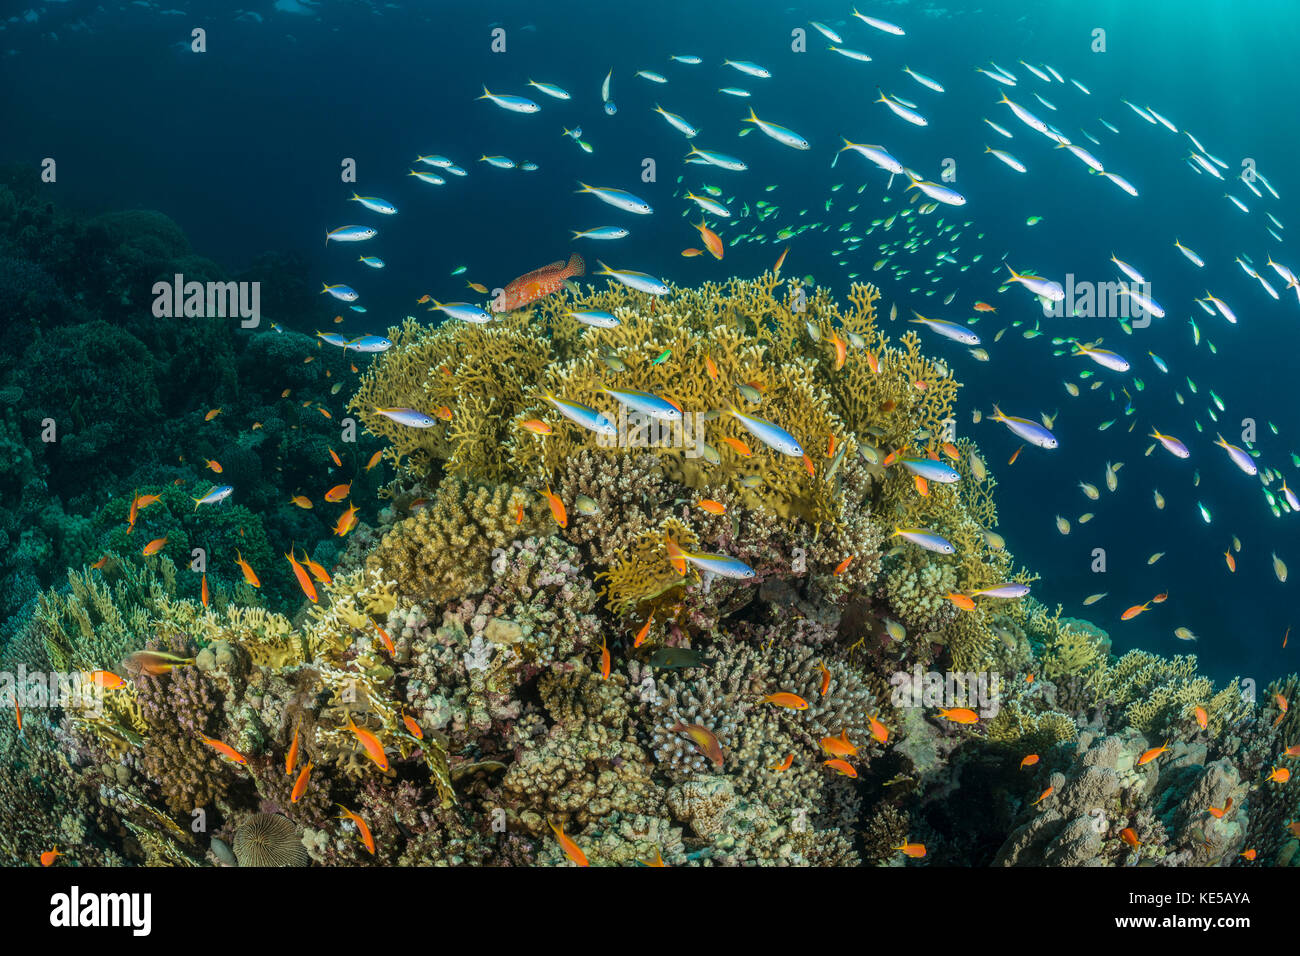 Yellowback Fusilier over Coral Reef, Caesio teres, Marsa Alam, Red Sea, Egypt Stock Photo